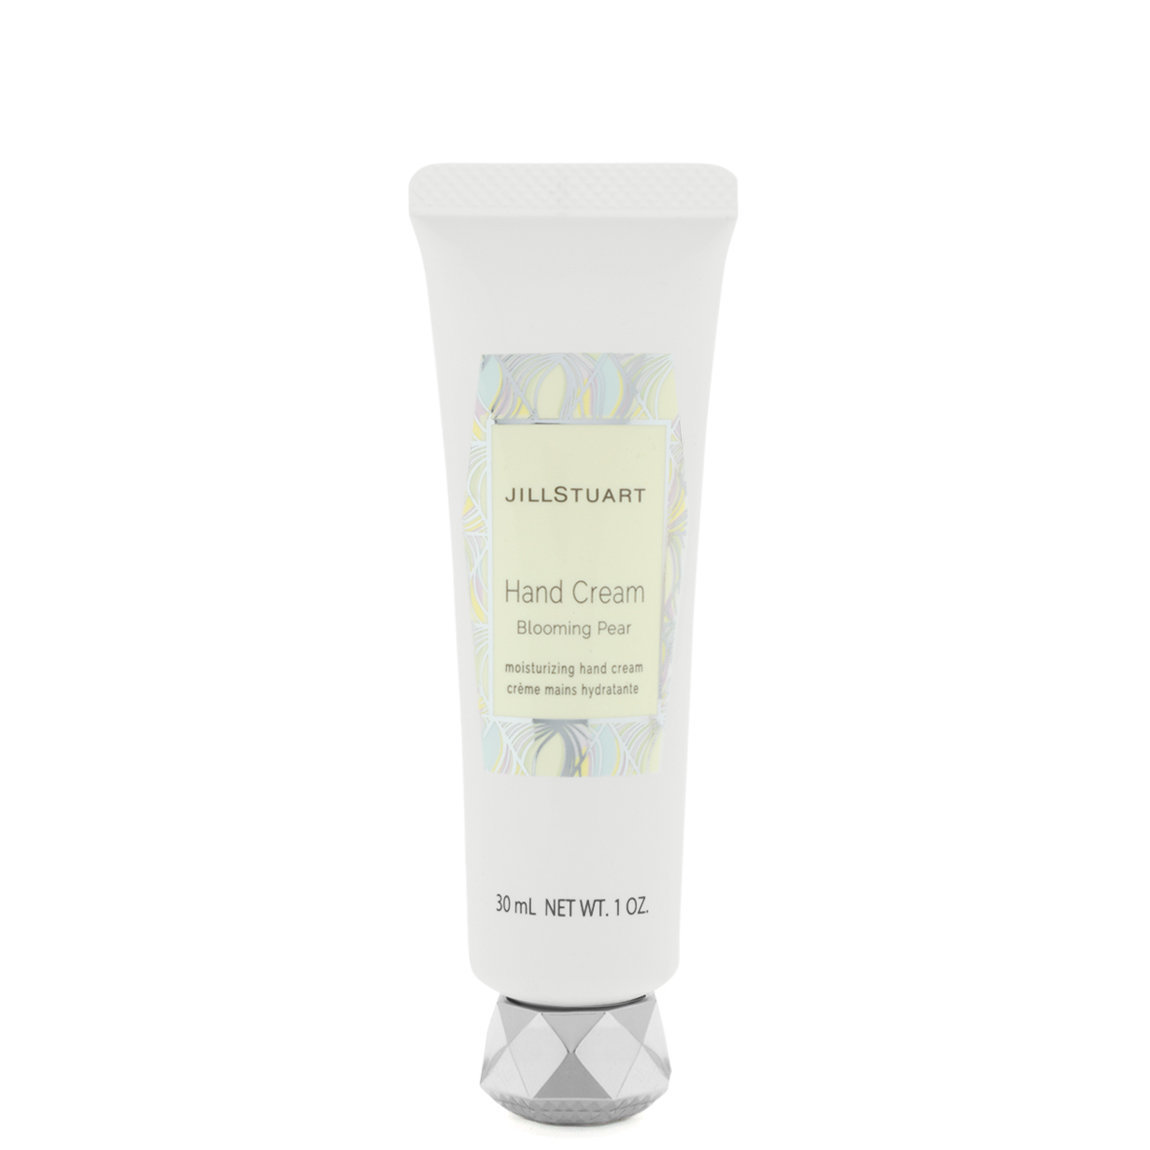 JILL STUART Beauty Hand Cream - Blooming Pear 30 g alternative view 1 - product swatch.